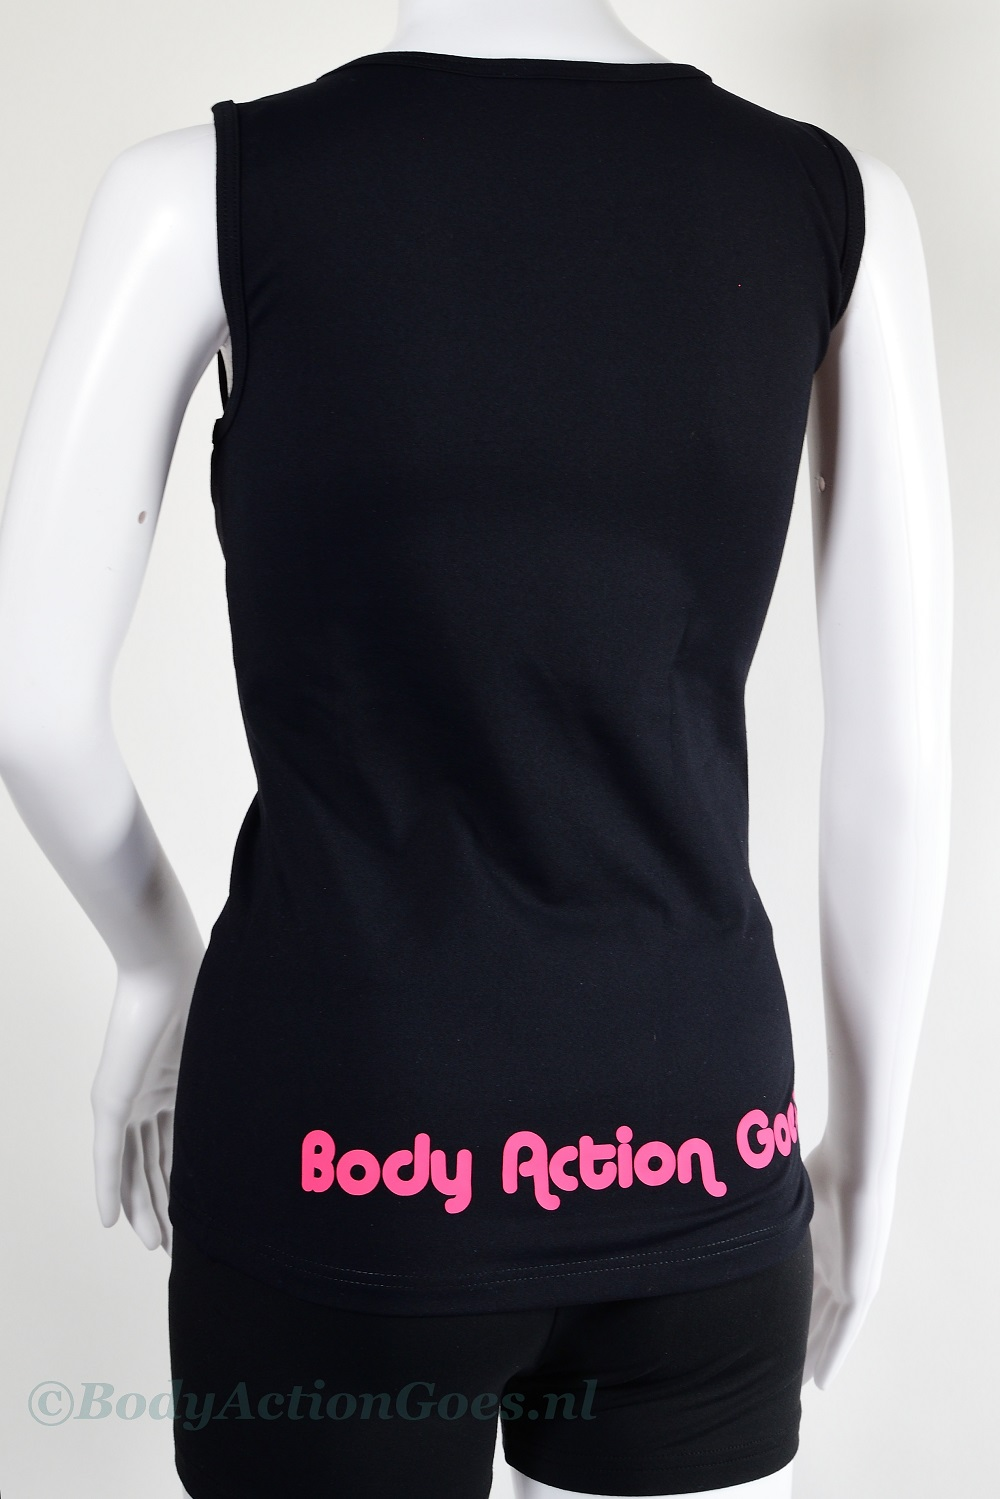 BASIS TOP BODY ACTION GOES